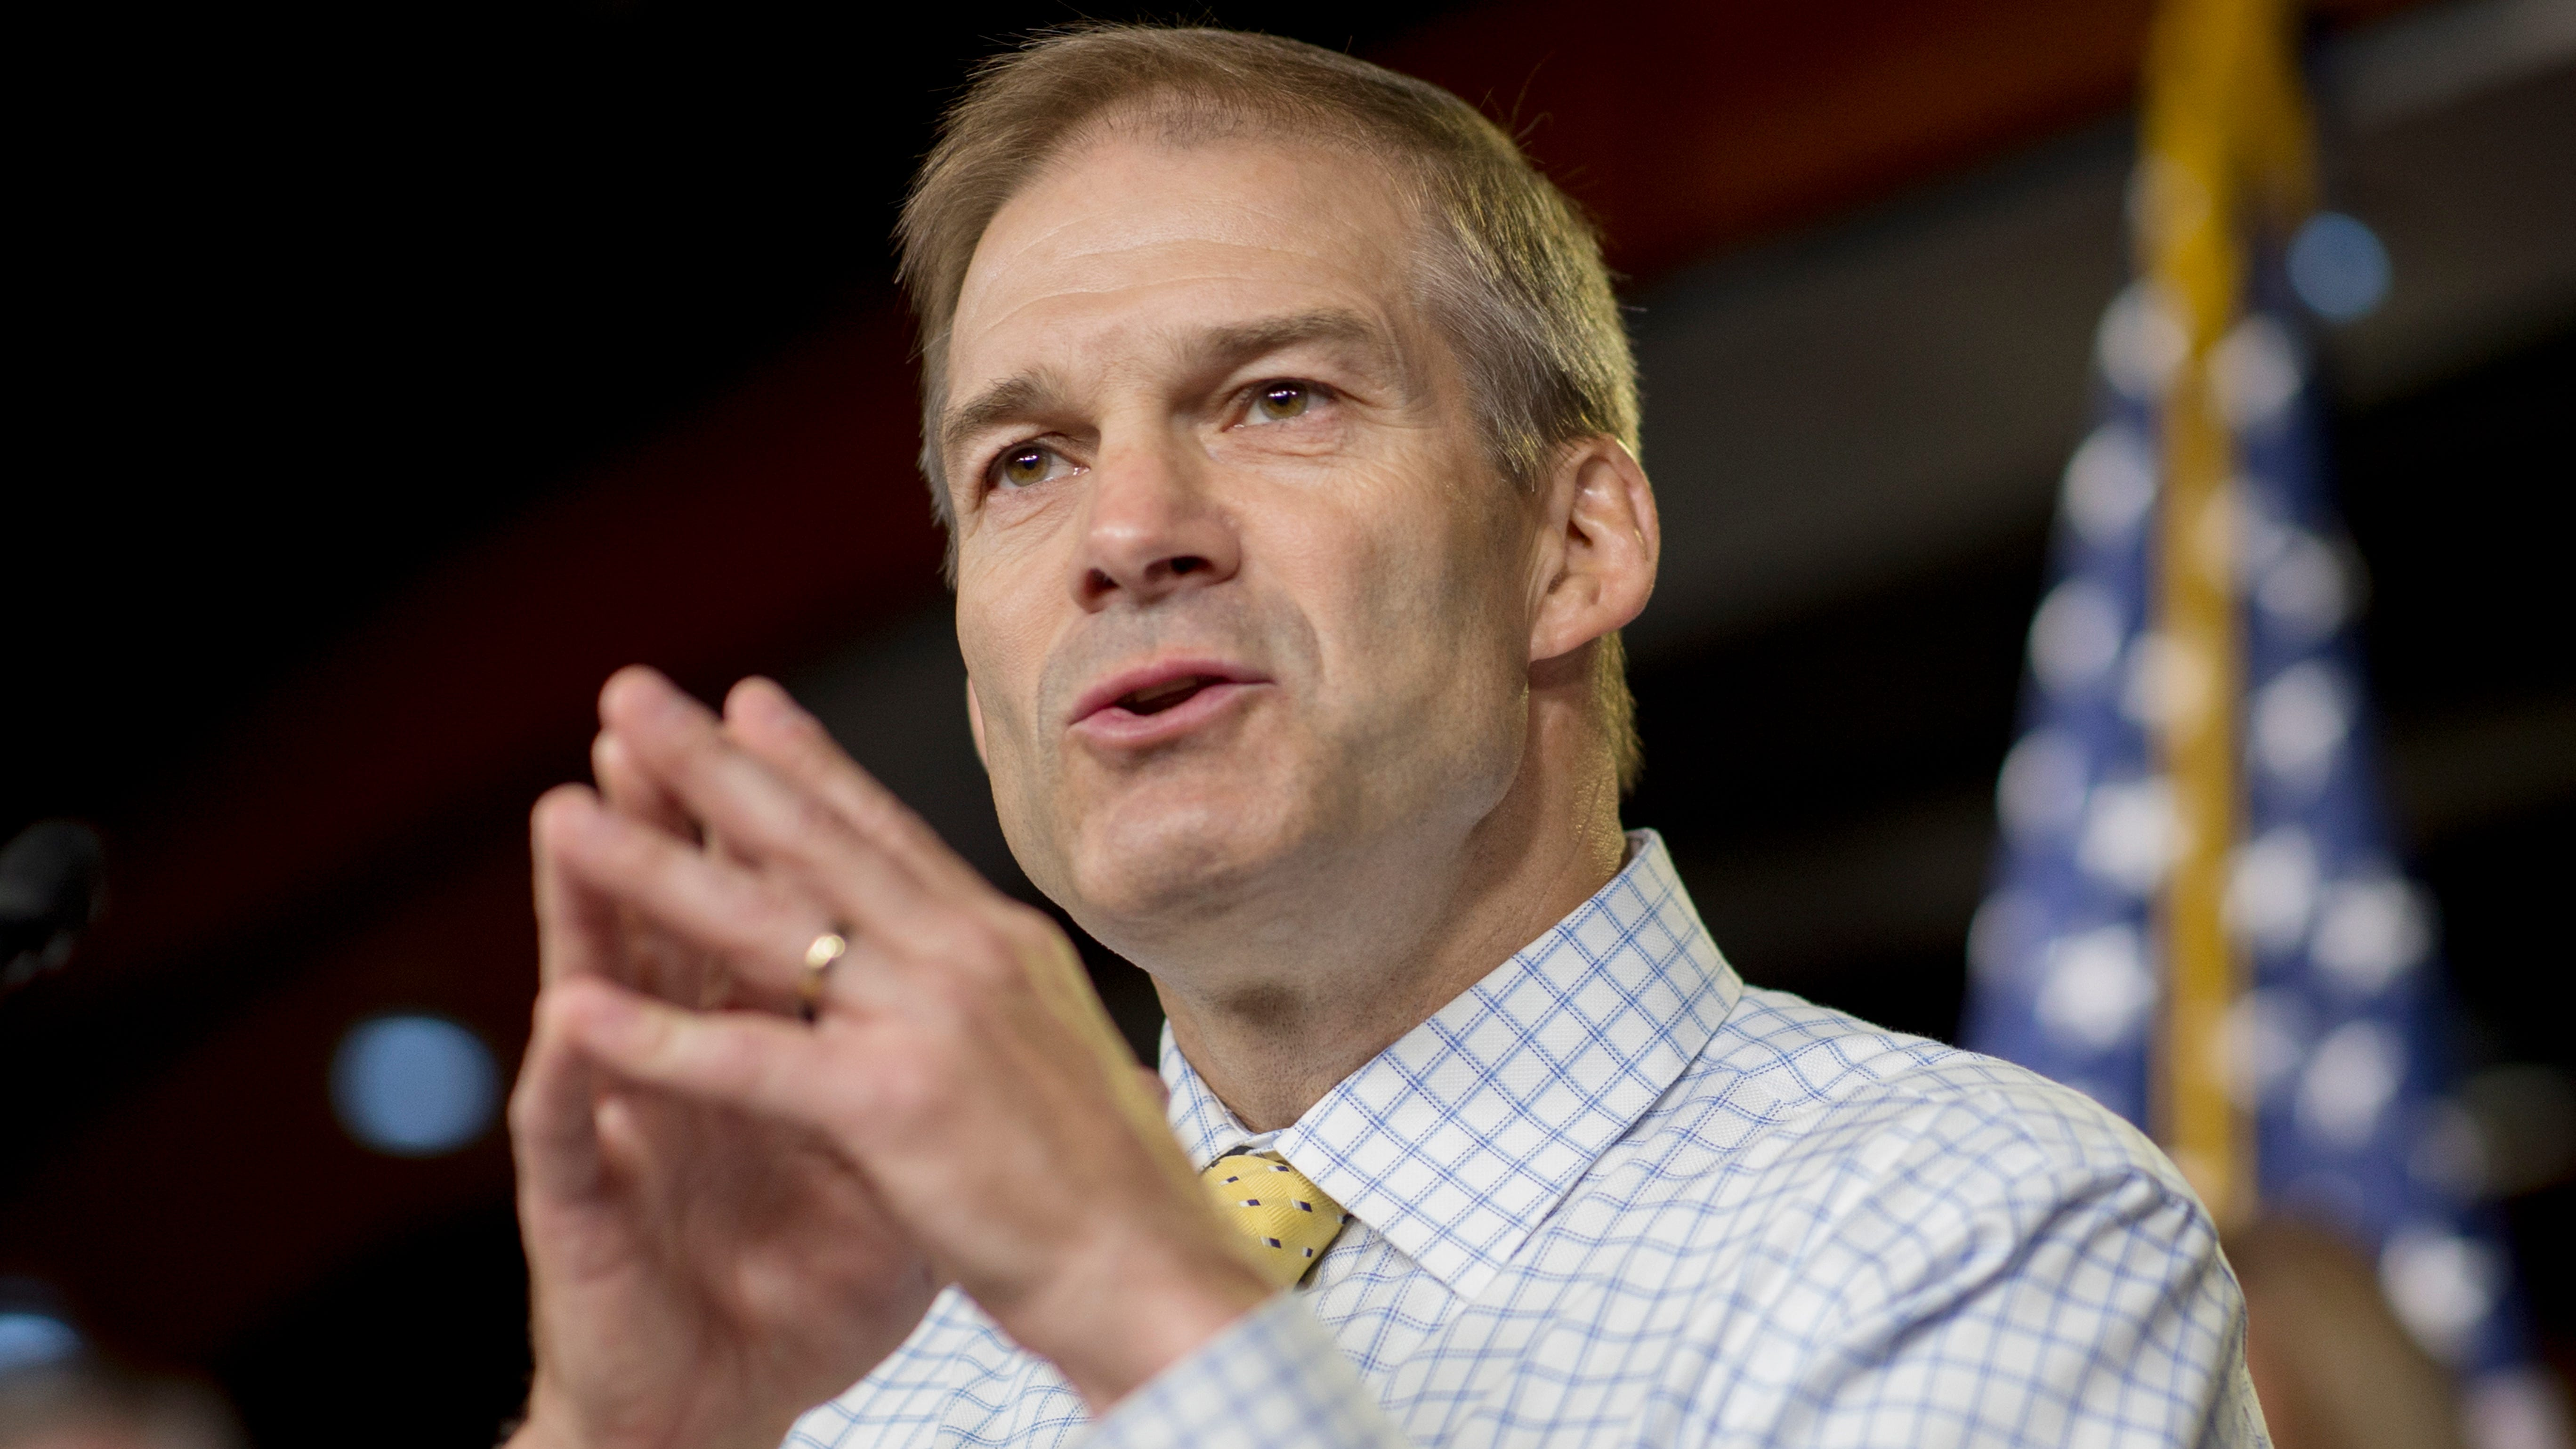 Rep. Jim Jordan, R-Ohio, speaks during a news conference on Capitol Hill in Washington, on Sept. 6, 2018.